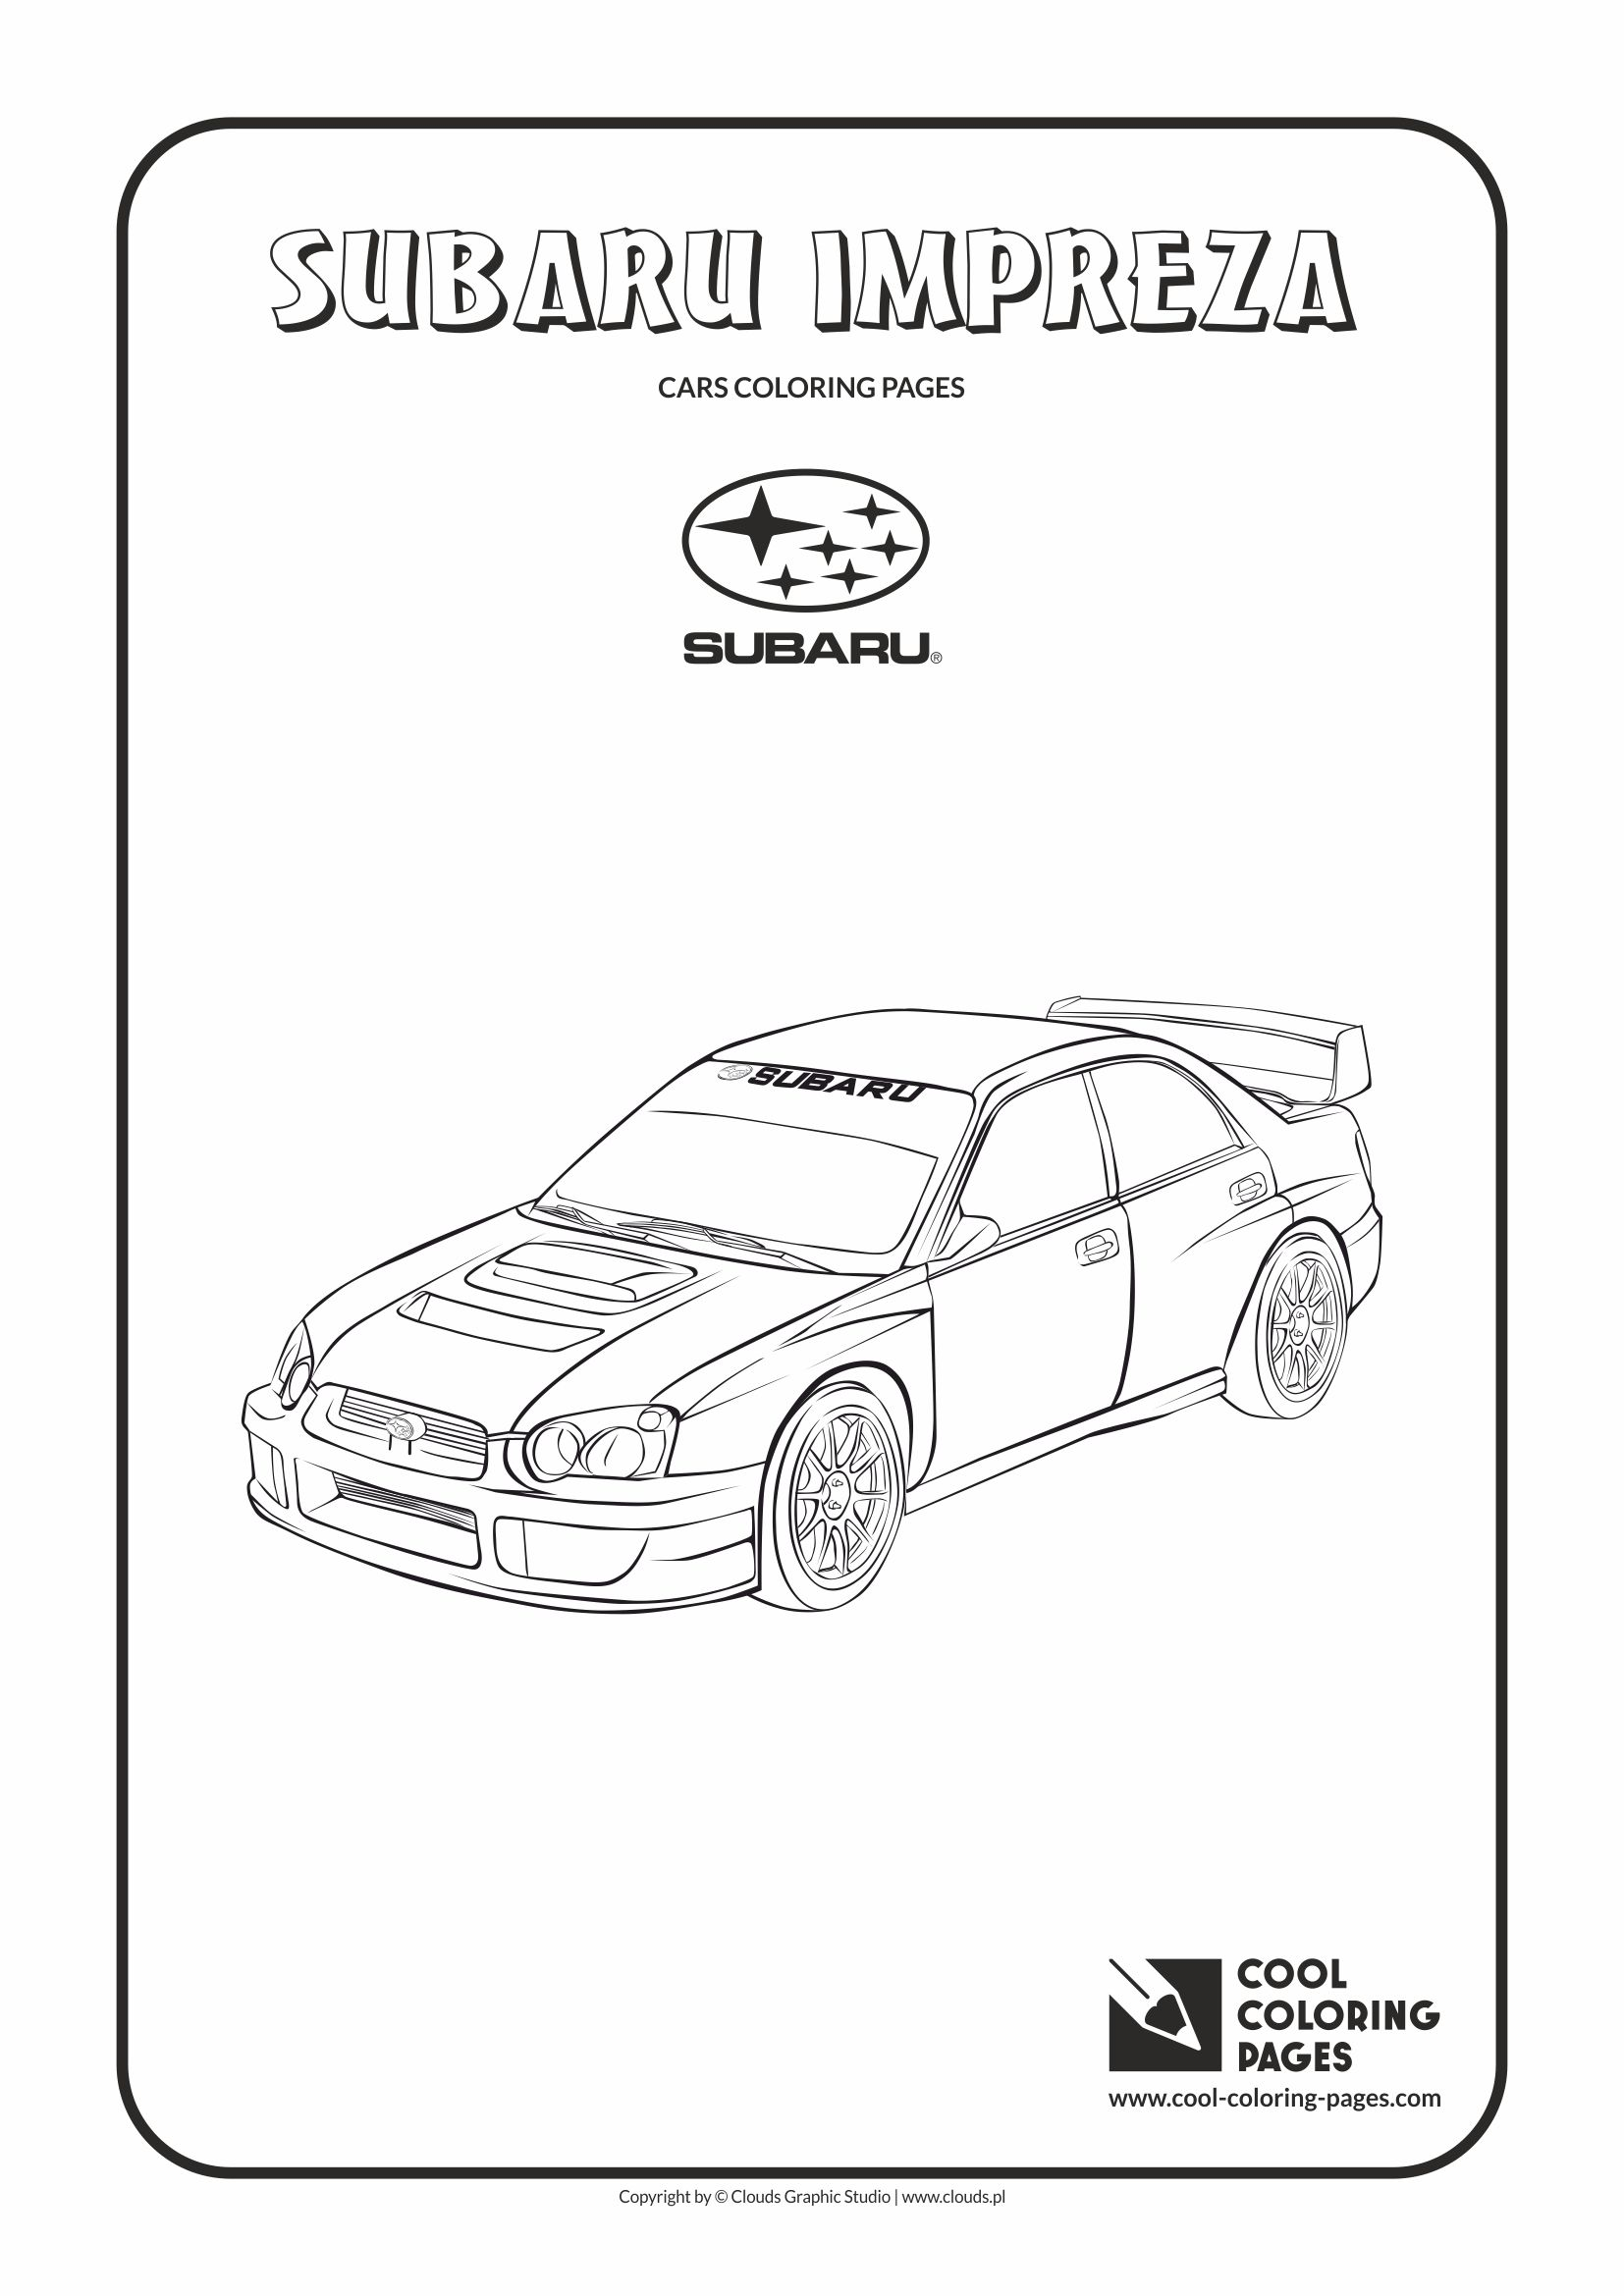 Cars coloring pages | Cool Coloring Pages